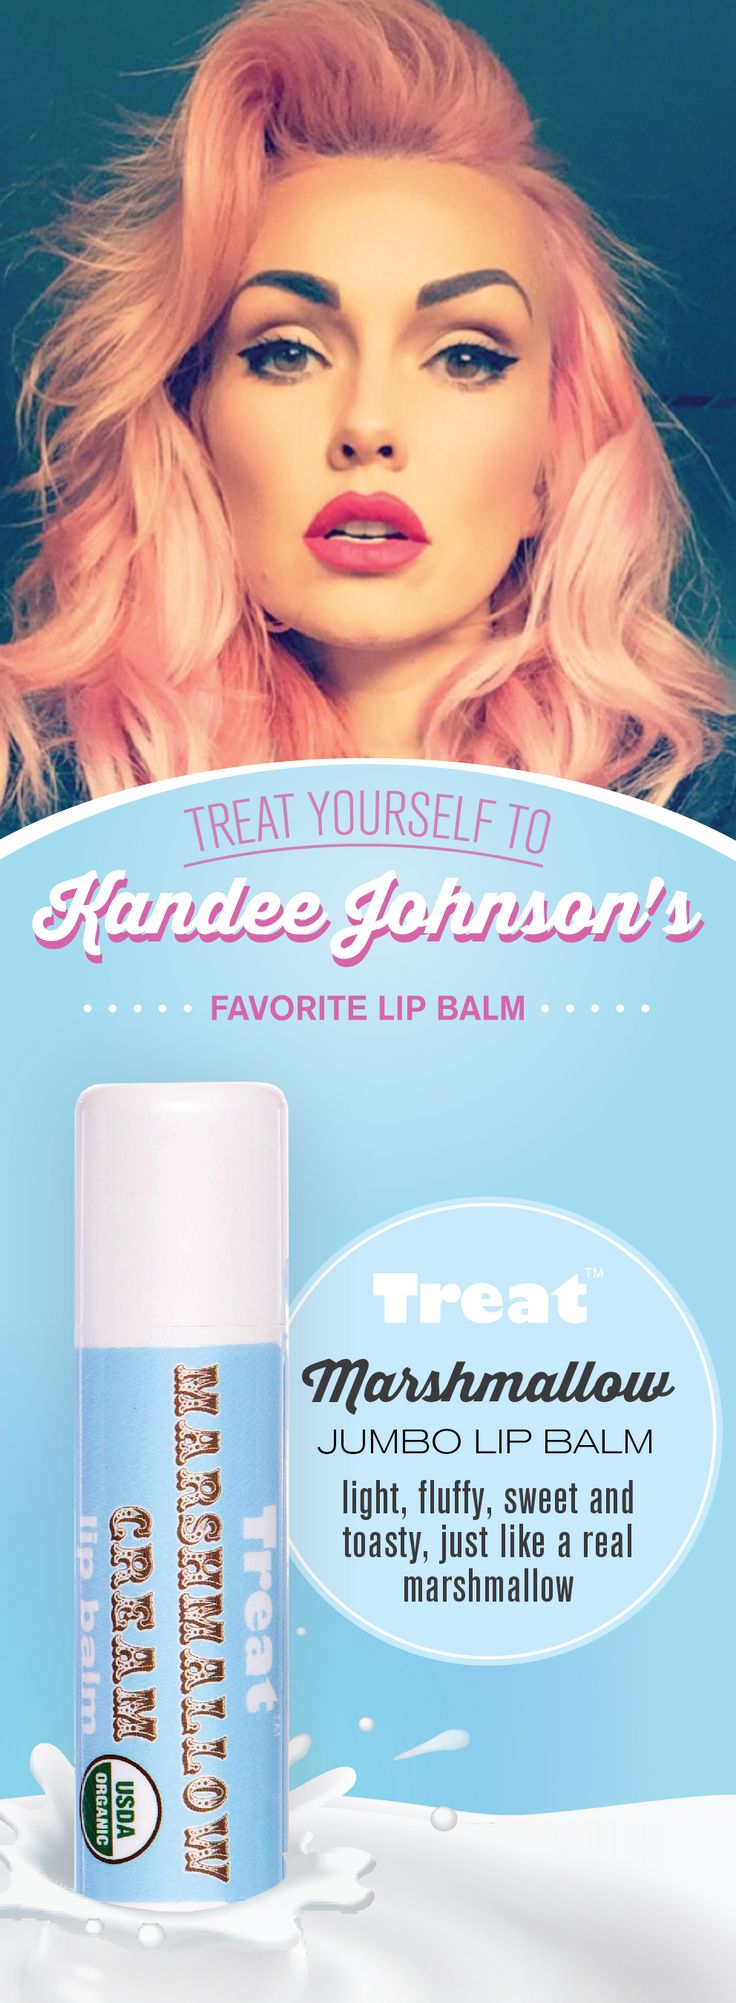 """""""This is by my bed. I have one in my purse, I have one of these stashed in every room in my house."""" KANDEE JOHNSON - Treat yourself to one today at www.treatbeauty.com."""